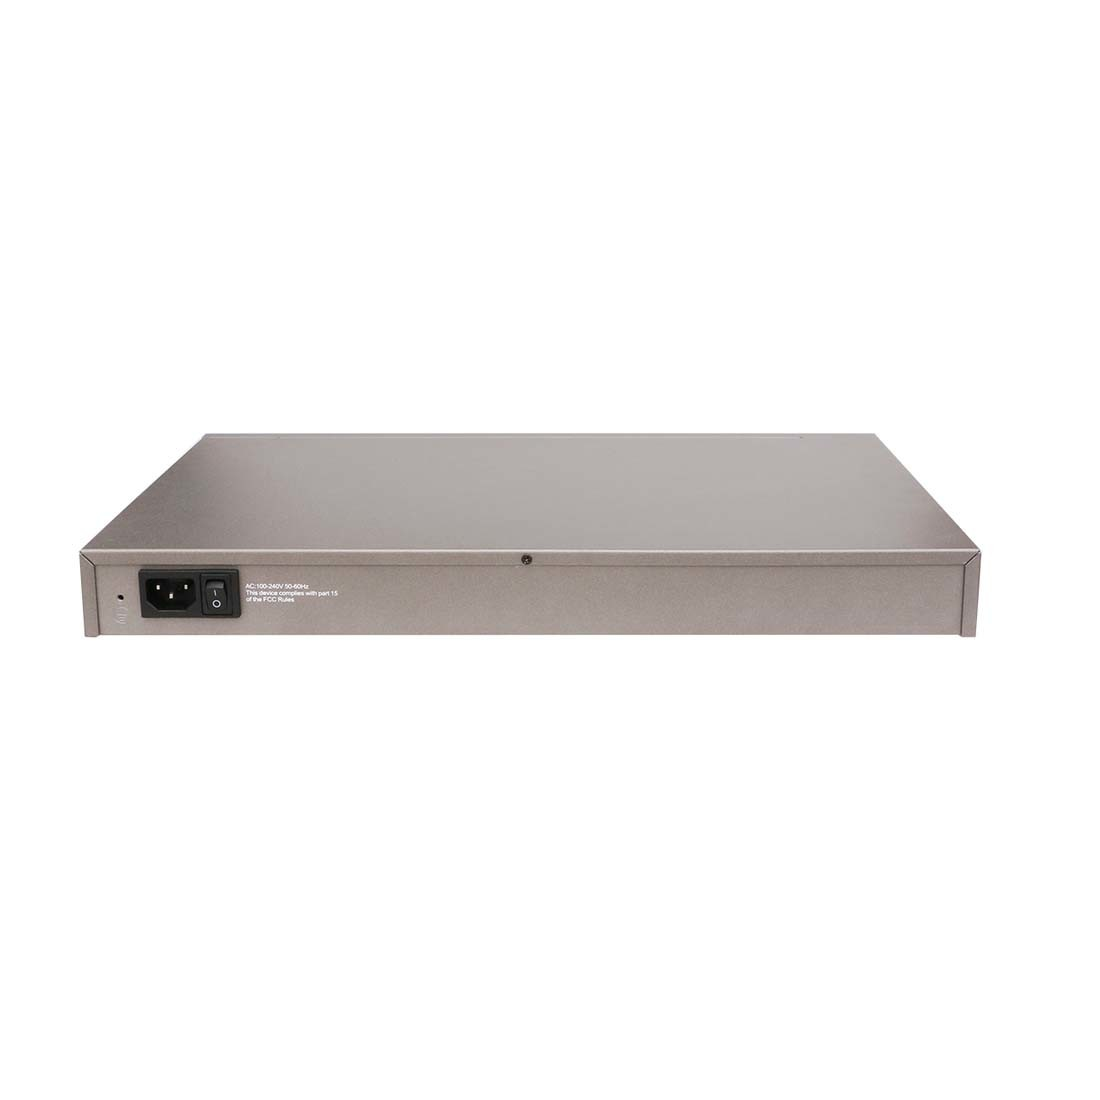 16 Port Poe Switch with 4 Ge Uplink Port New Model Promotion Price (TS1600F)